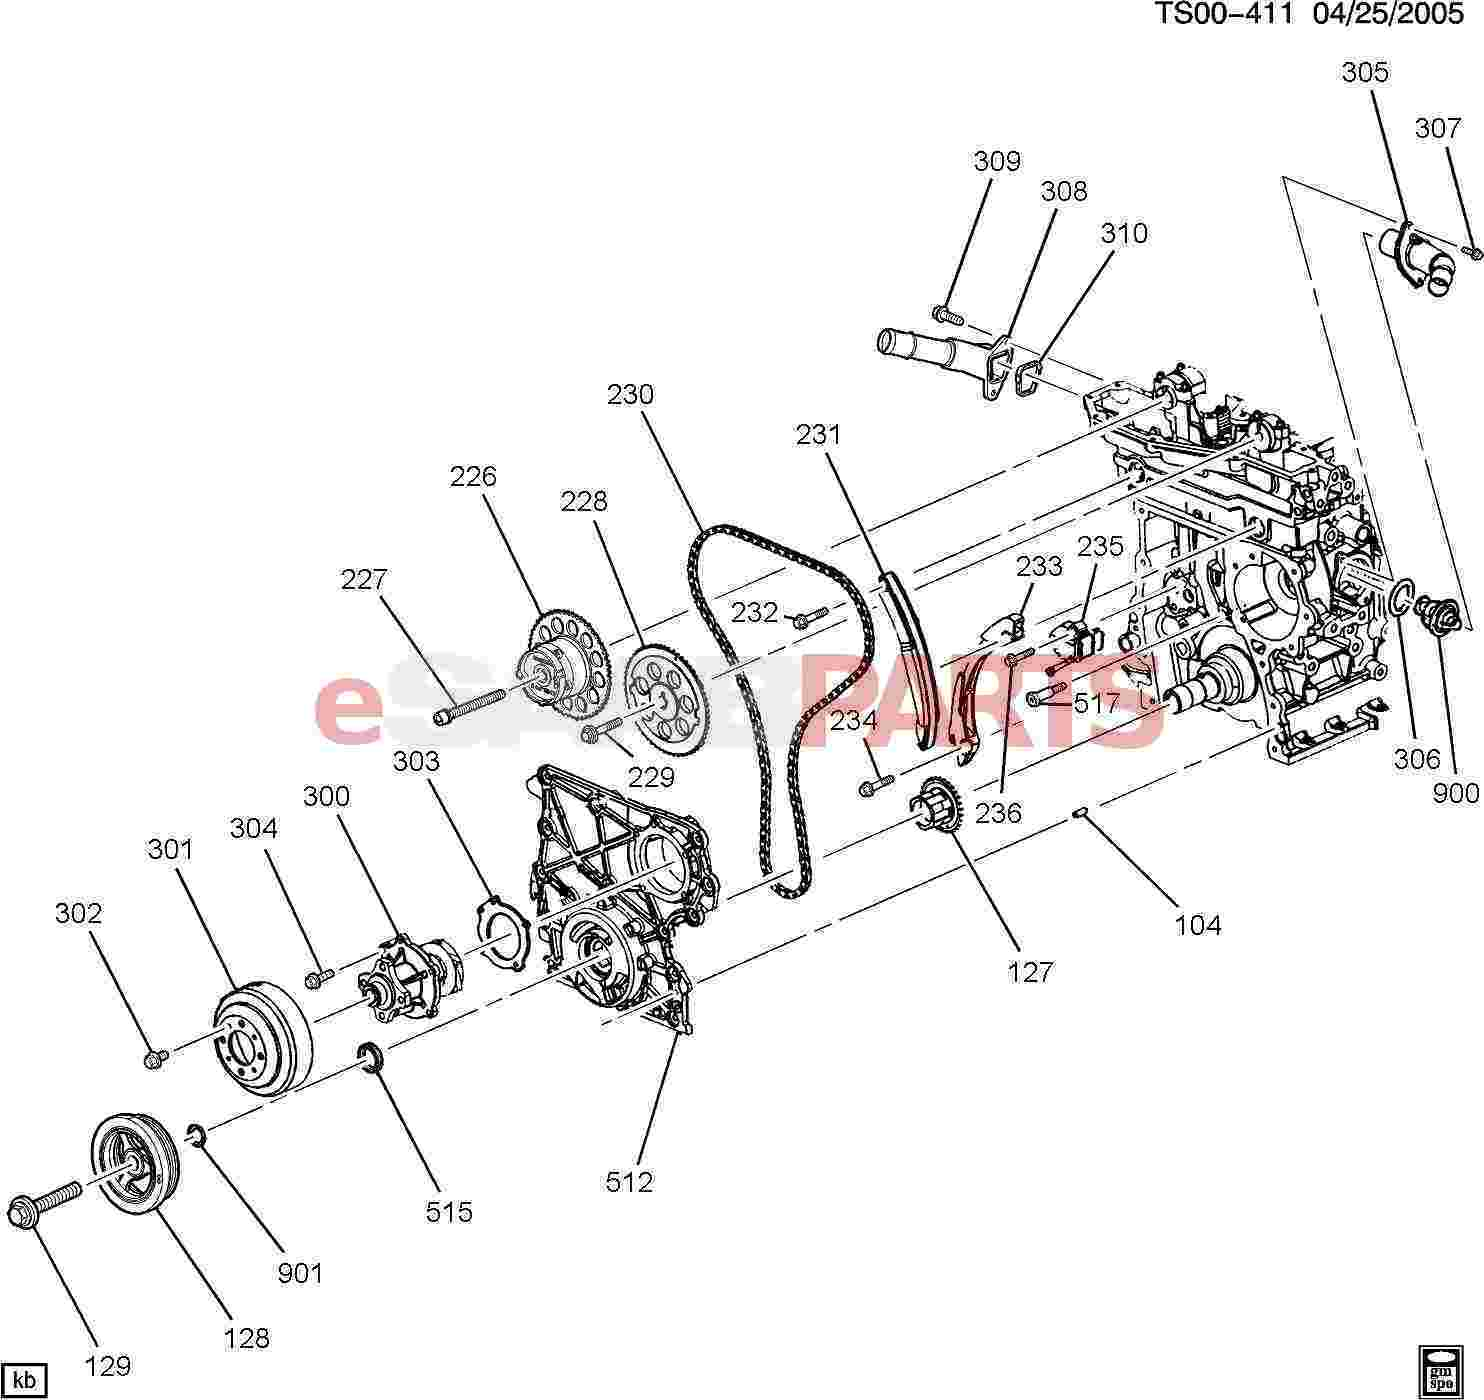 Chevrolet 4 2 L6 Engine Diagram | Wiring Diagram on gm serpentine belt diagram, chevrolet 4.2 l6 engine diagram, colorado 3 5 vortex 3500 engine diagram, 3.8 liter gm engine diagram, car engine diagram, chevy 4.2l engine diagram, gm quad 4 valve diagram, 4.3 v6 engine diagram, w12 engine animation diagram, 4.2 firing order diagram, 4300 vortec sensor diagram, ford 3.8 v6 engine diagram, gmc envoy engine diagram, 1997 318i engine diagram,